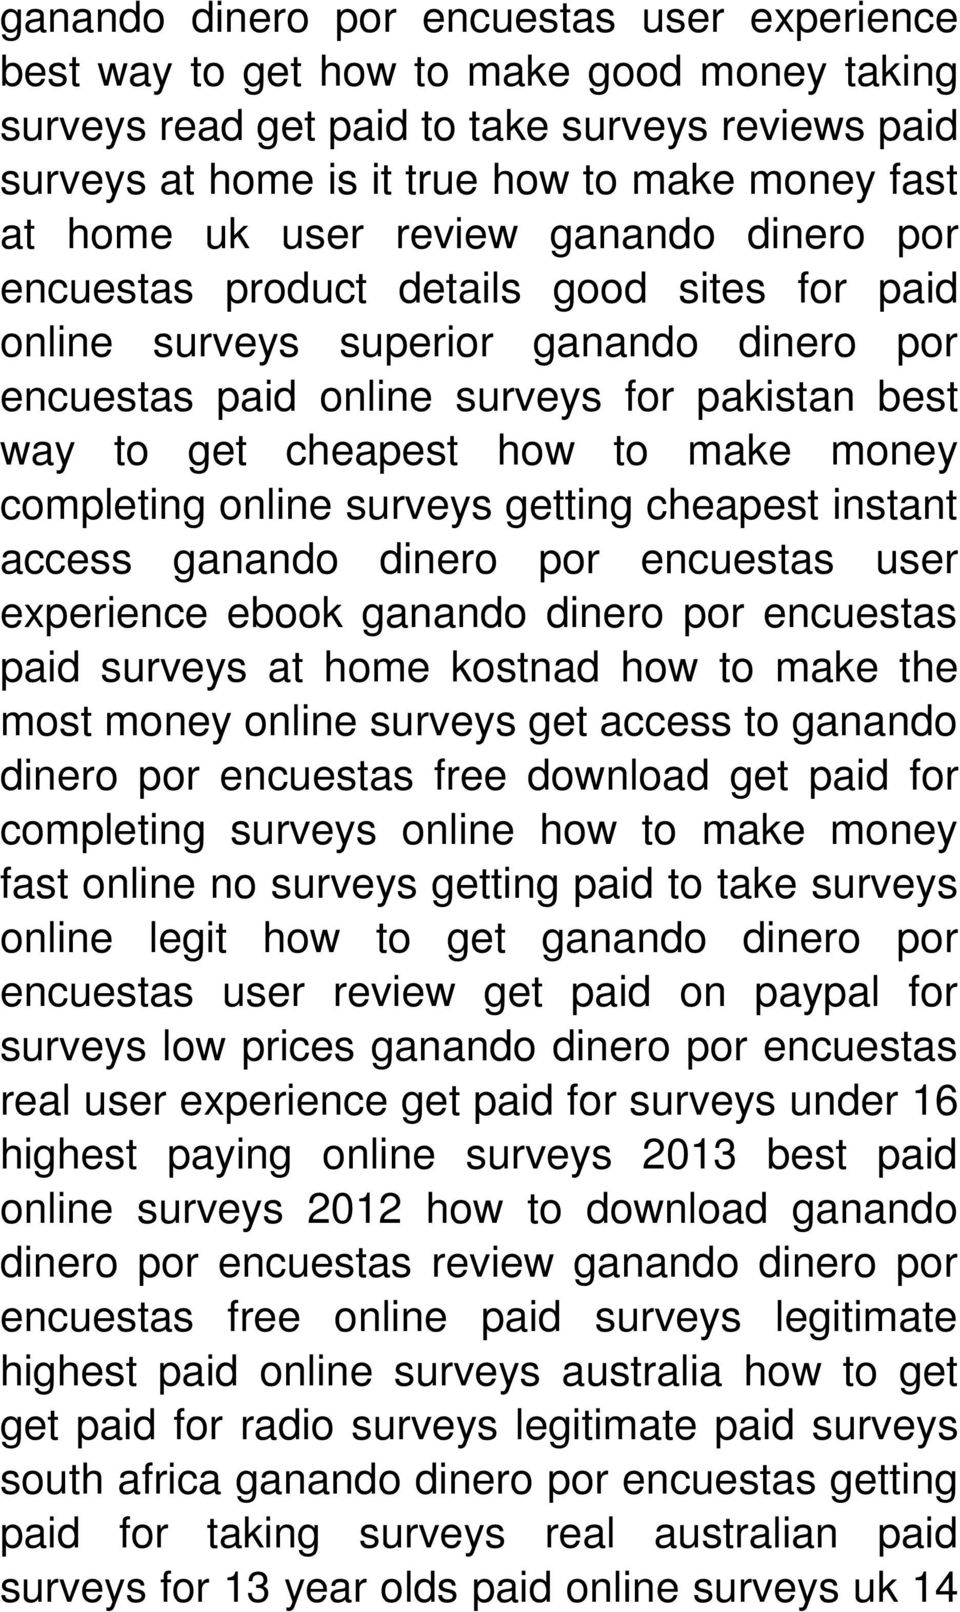 make money completing online surveys getting cheapest instant access ganando dinero por encuestas user experience ebook ganando dinero por encuestas paid surveys at home kostnad how to make the most